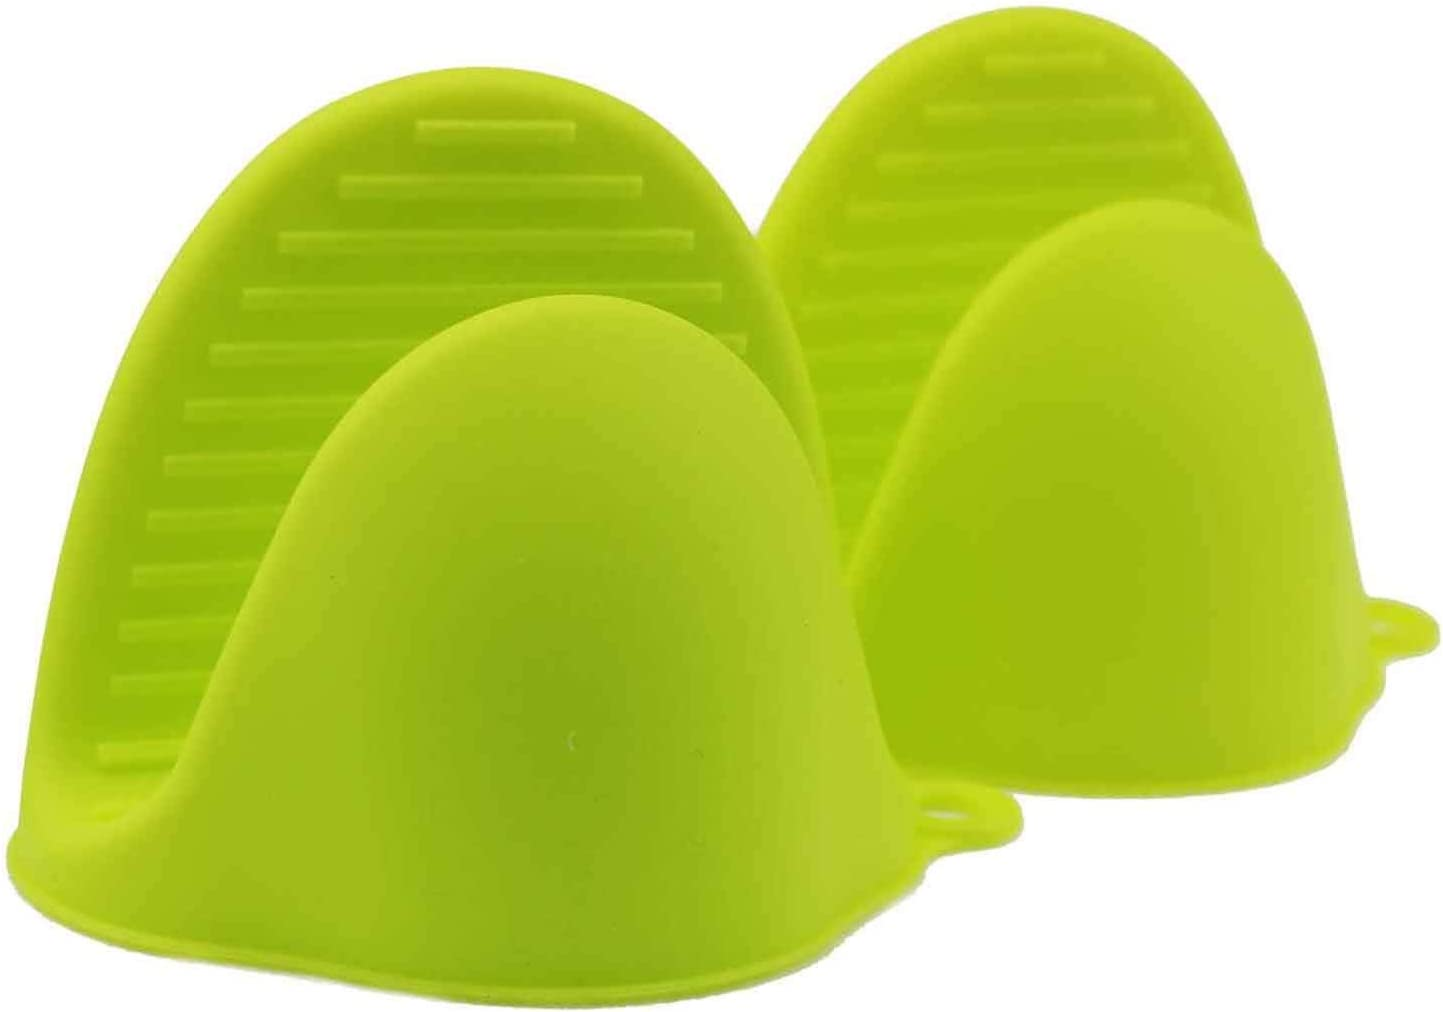 hubei Silicone Oven Mitts for Instant Pot or Kitchen use as Potholder or Baking Holder Oven mitt and Mitten Holders can be Used When Cooking on a Grill (1pcs, Green)